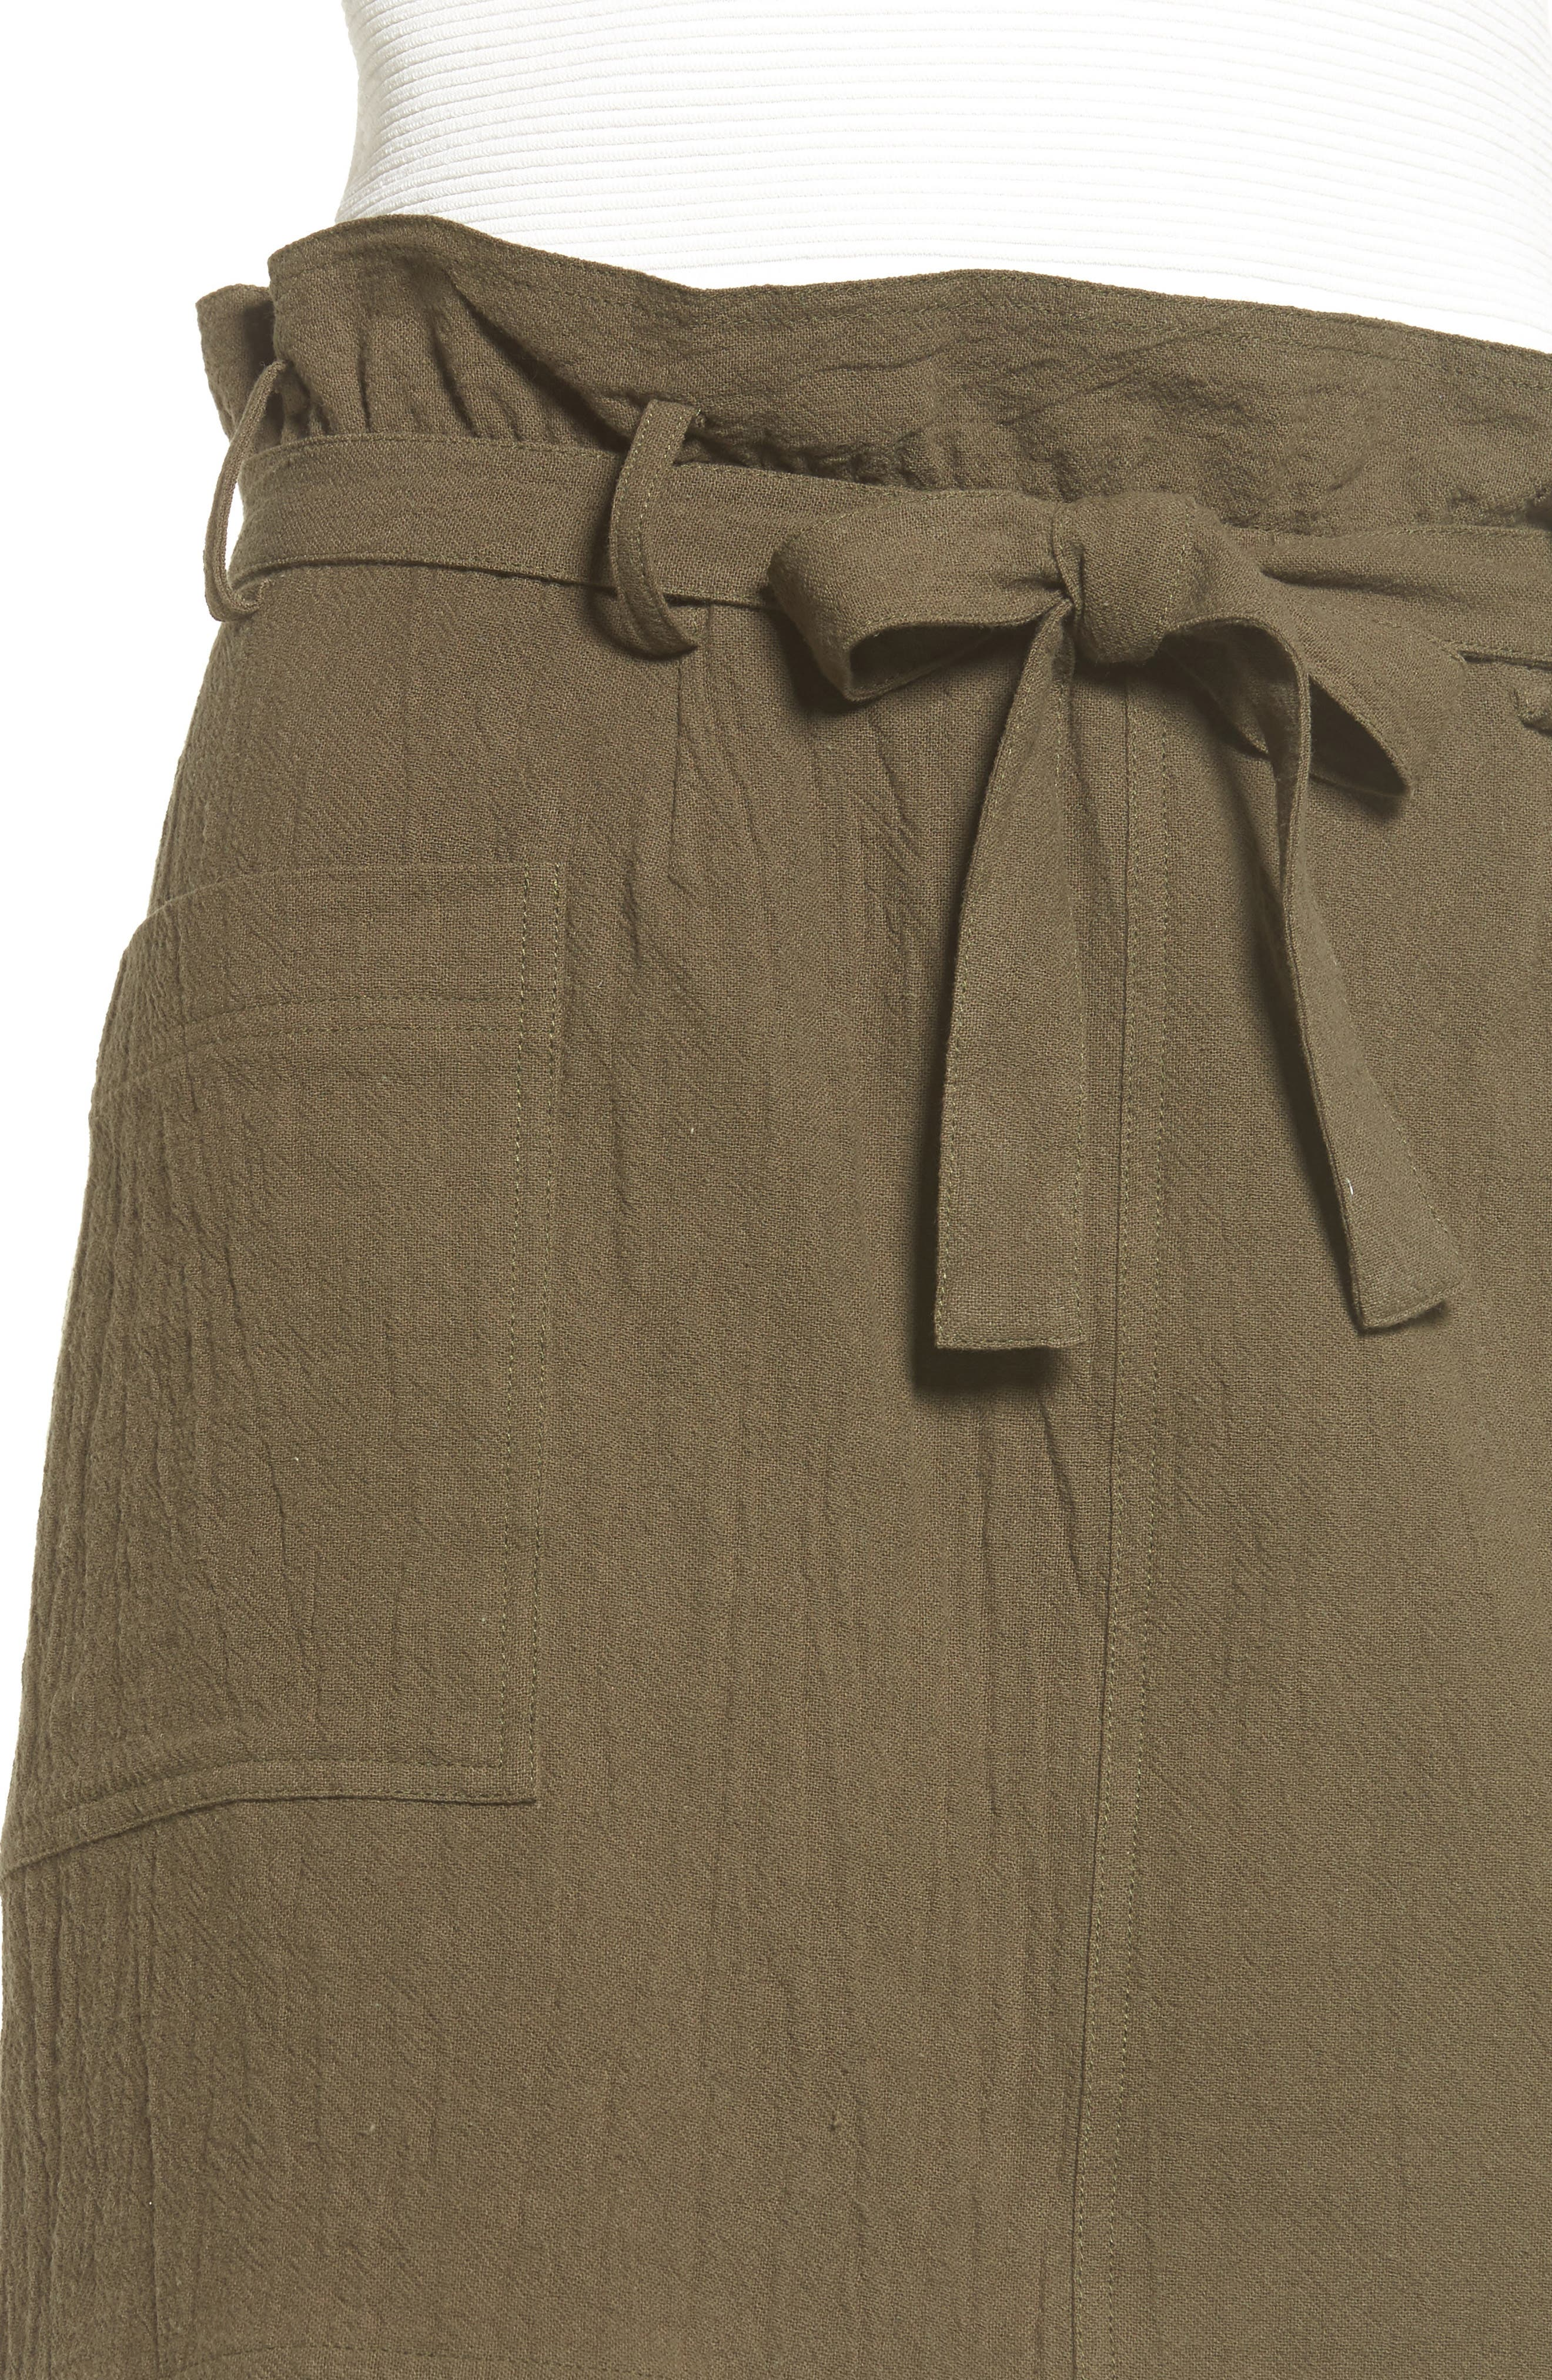 Paperbag Miniskirt,                             Alternate thumbnail 4, color,                             300